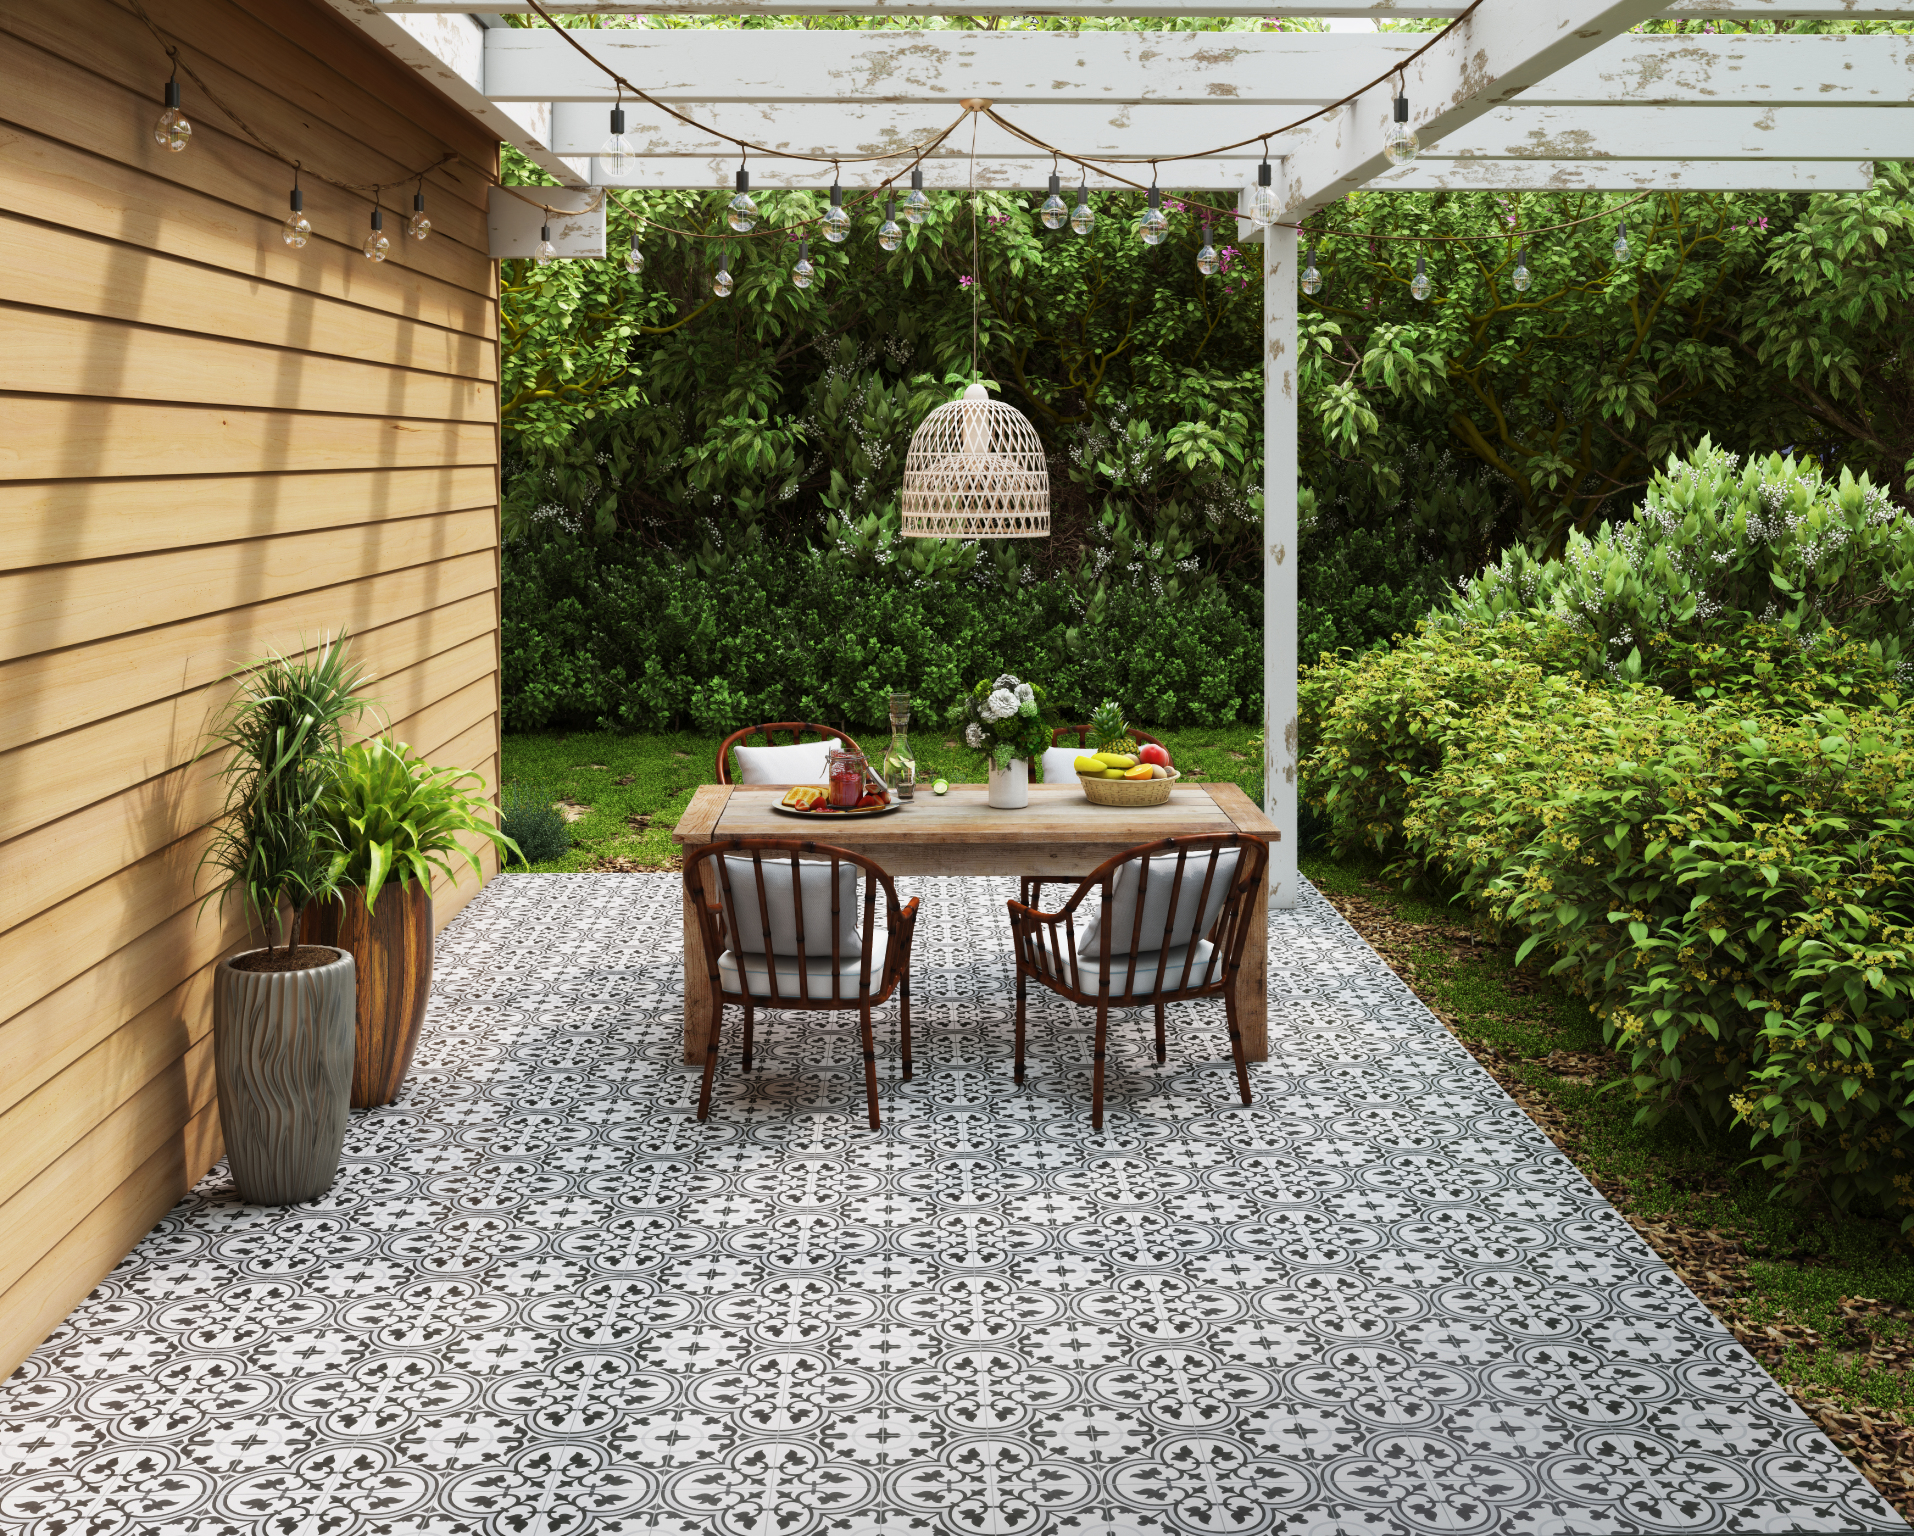 Patterned tile flooring in an outdoor dining area